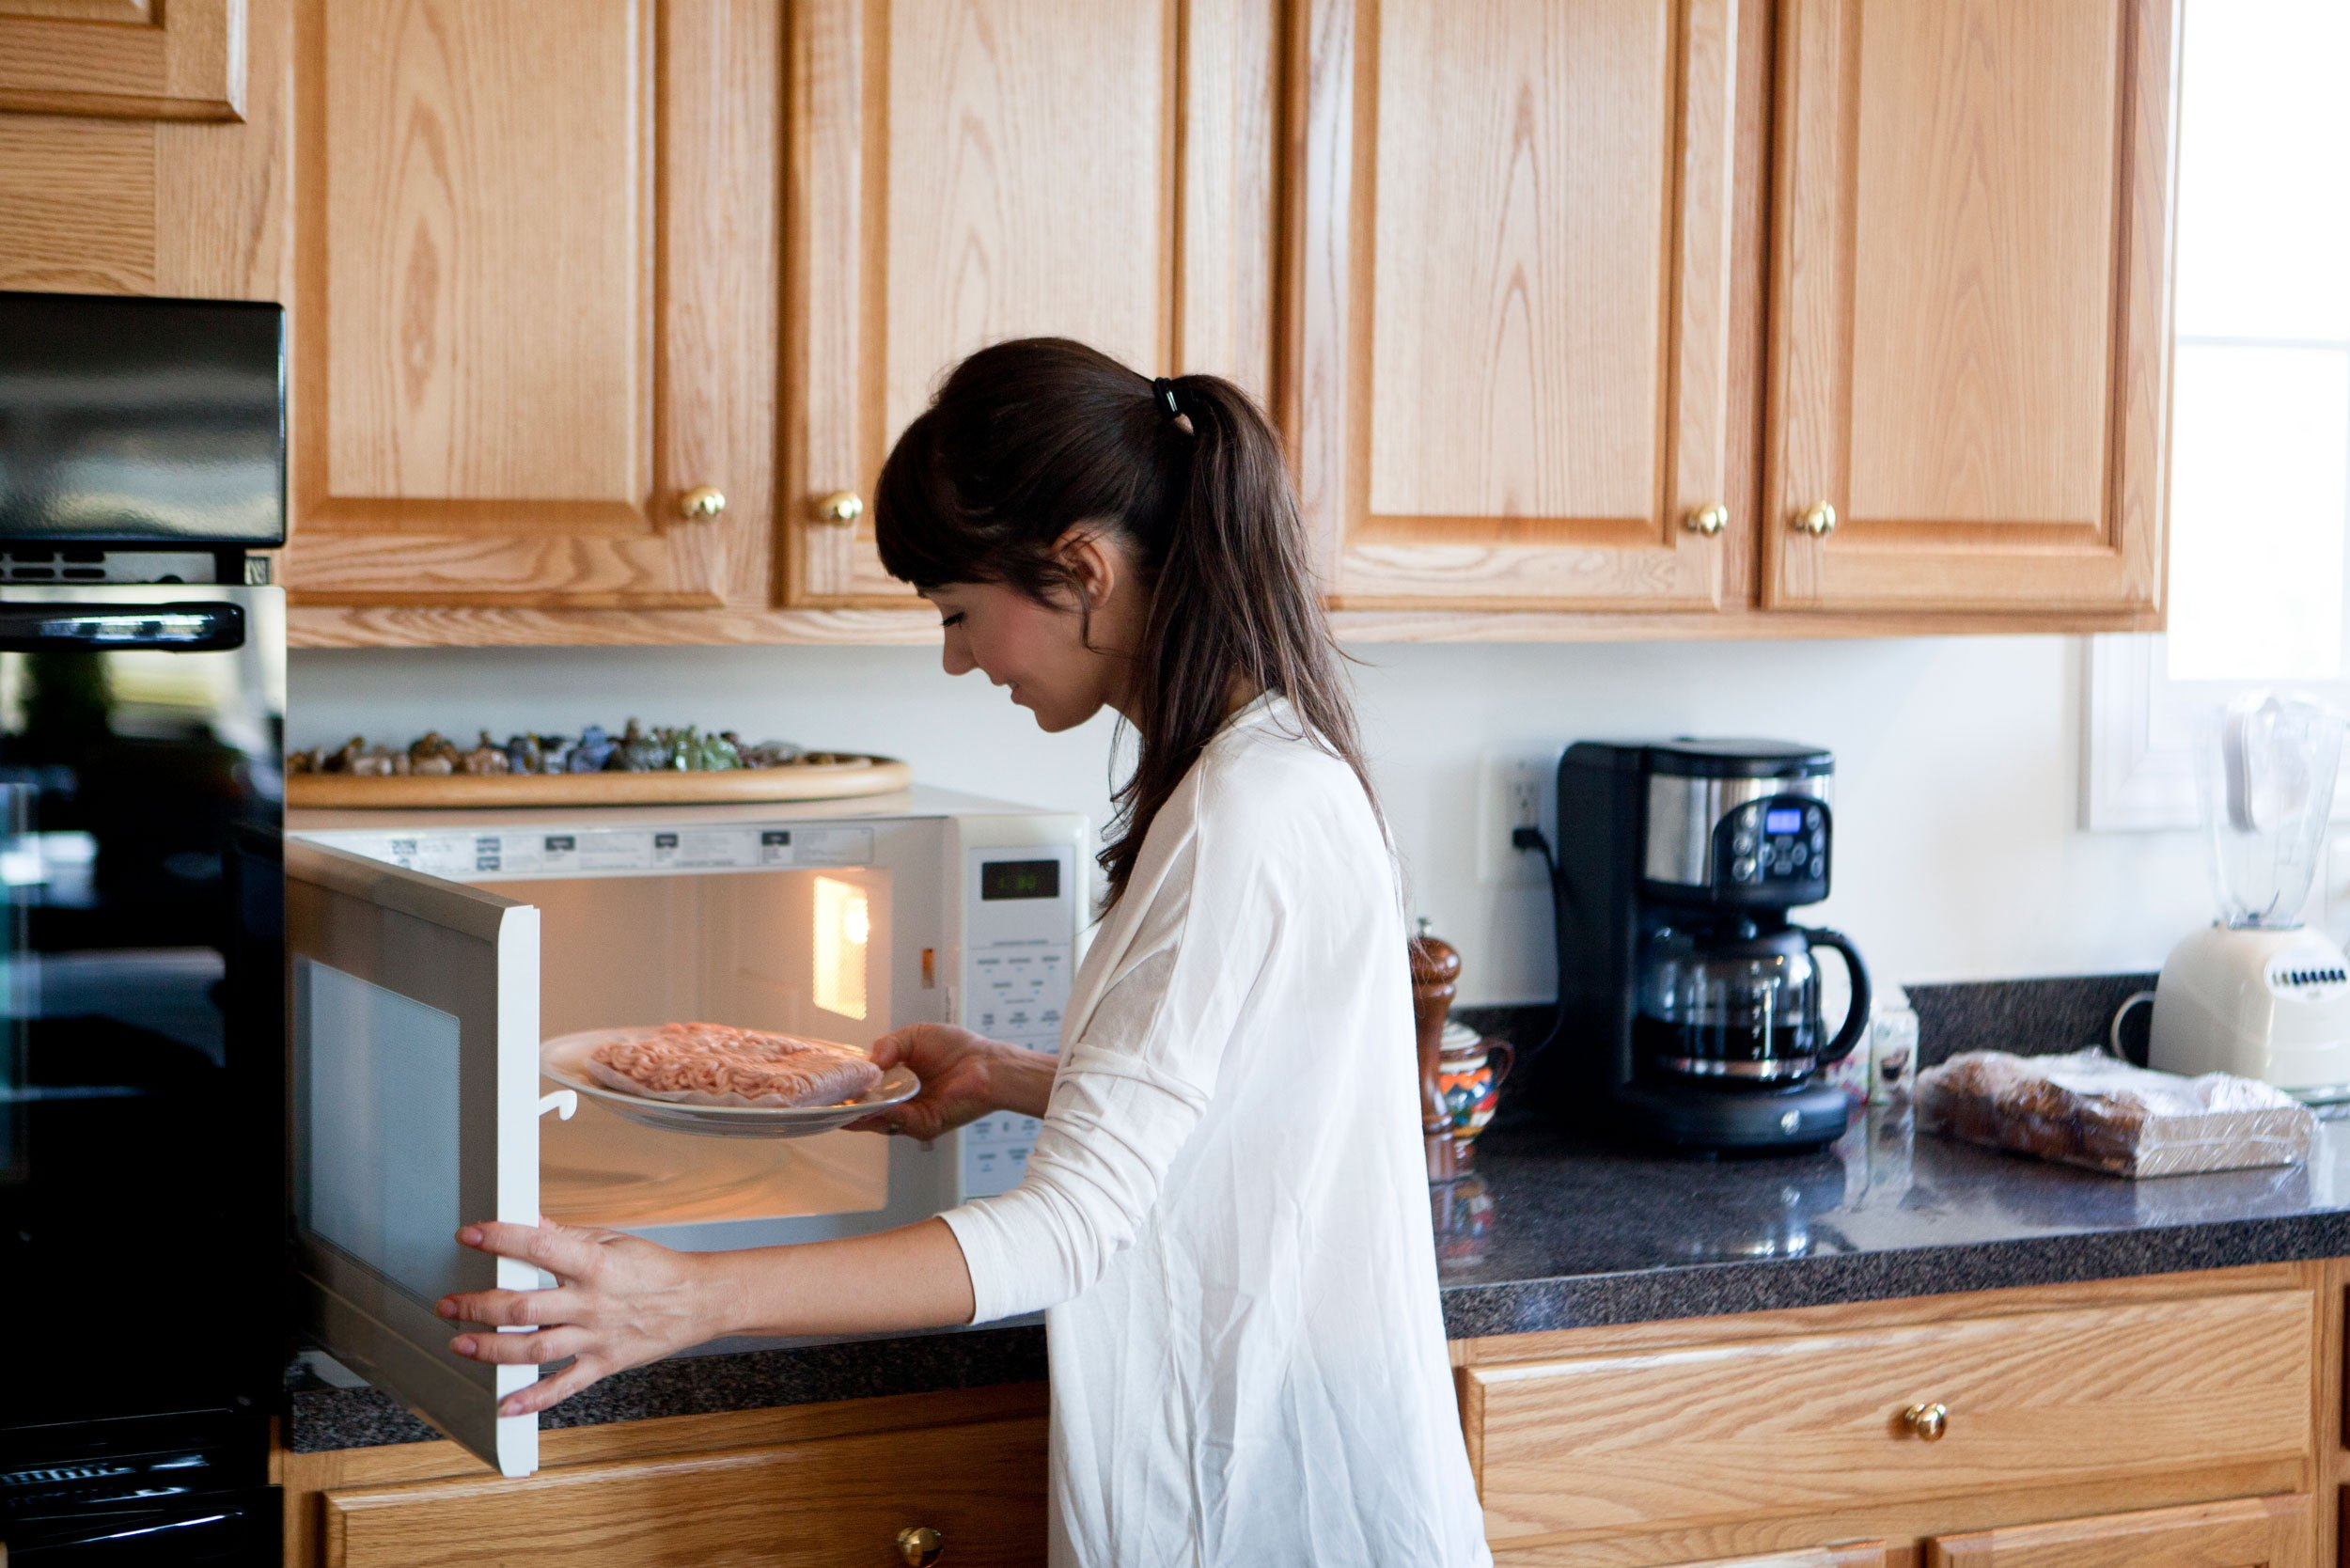 10 Microwave Hacks That Make Healthy Cooking a Breeze